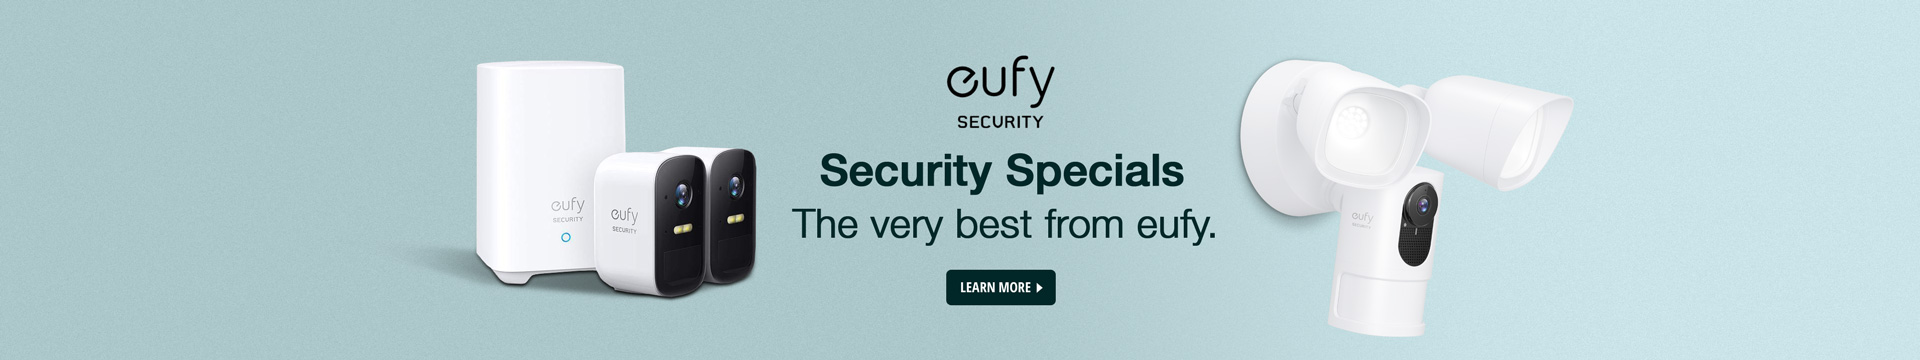 Eufy Security